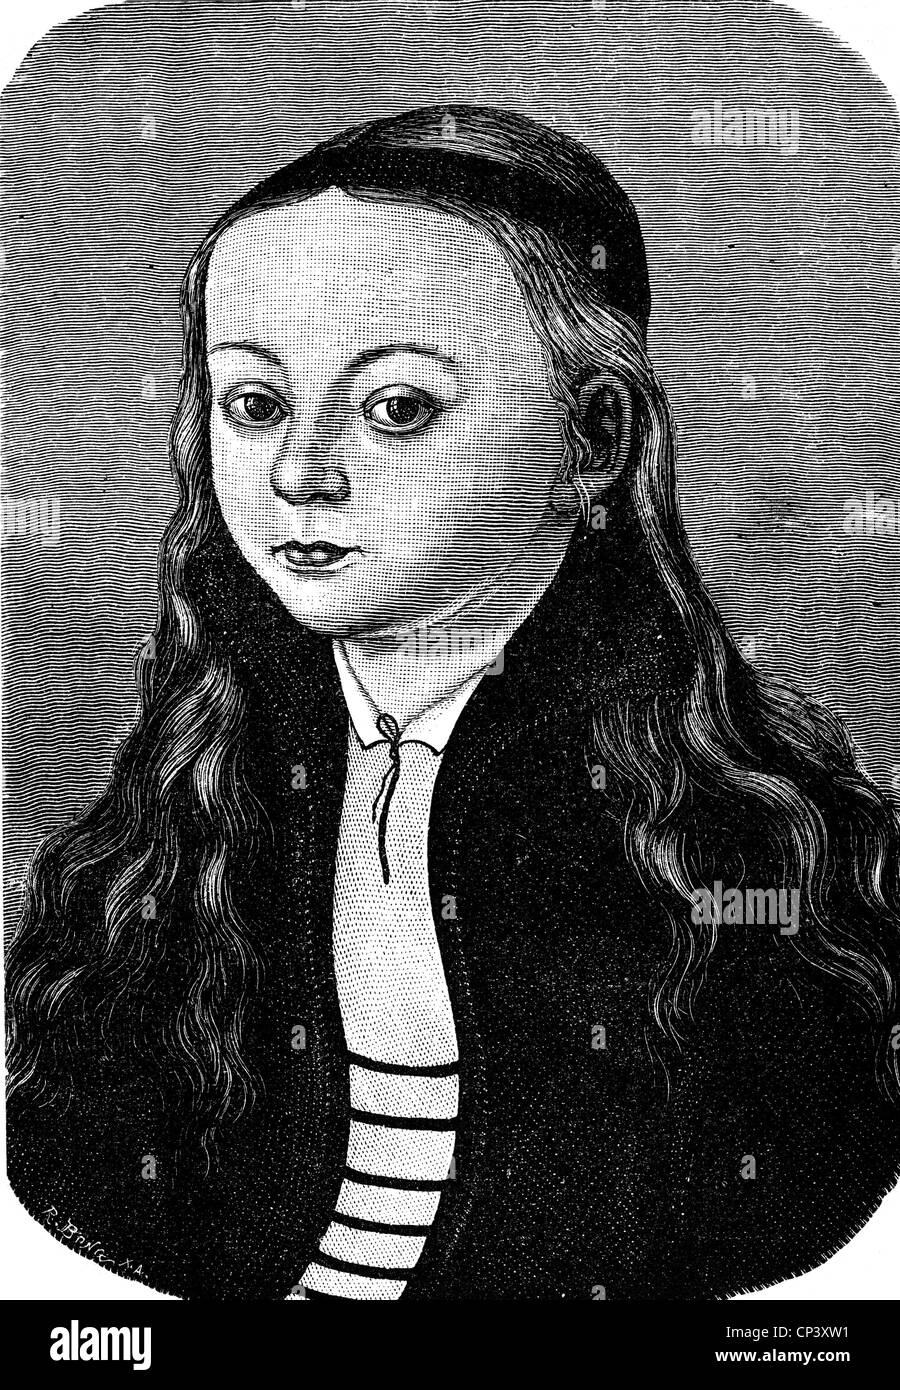 Luther, Martin, 10.11.1483 - 18.2.1546, German reformer, family, possible portrait of his daughter Magdalena (4.5.1529 - Stock Image